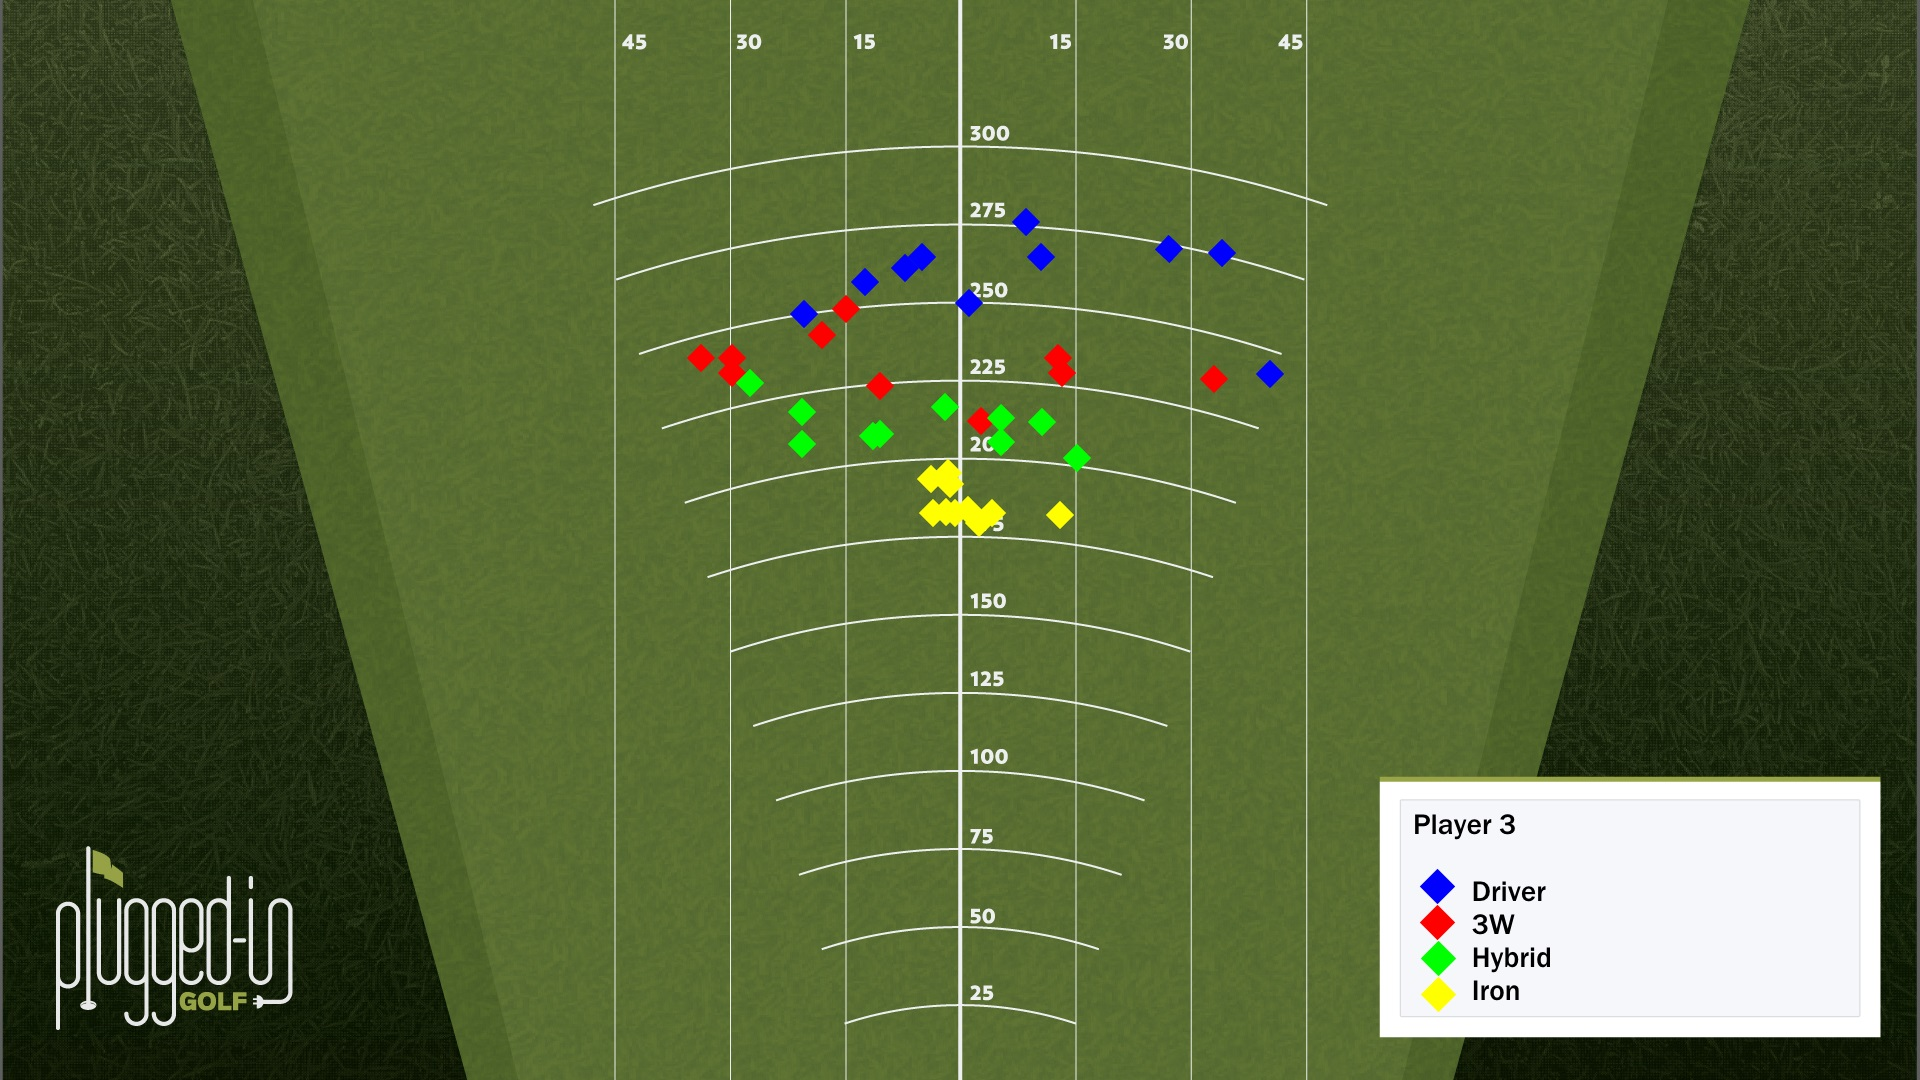 Player 3 Tee Shots - All Clubs